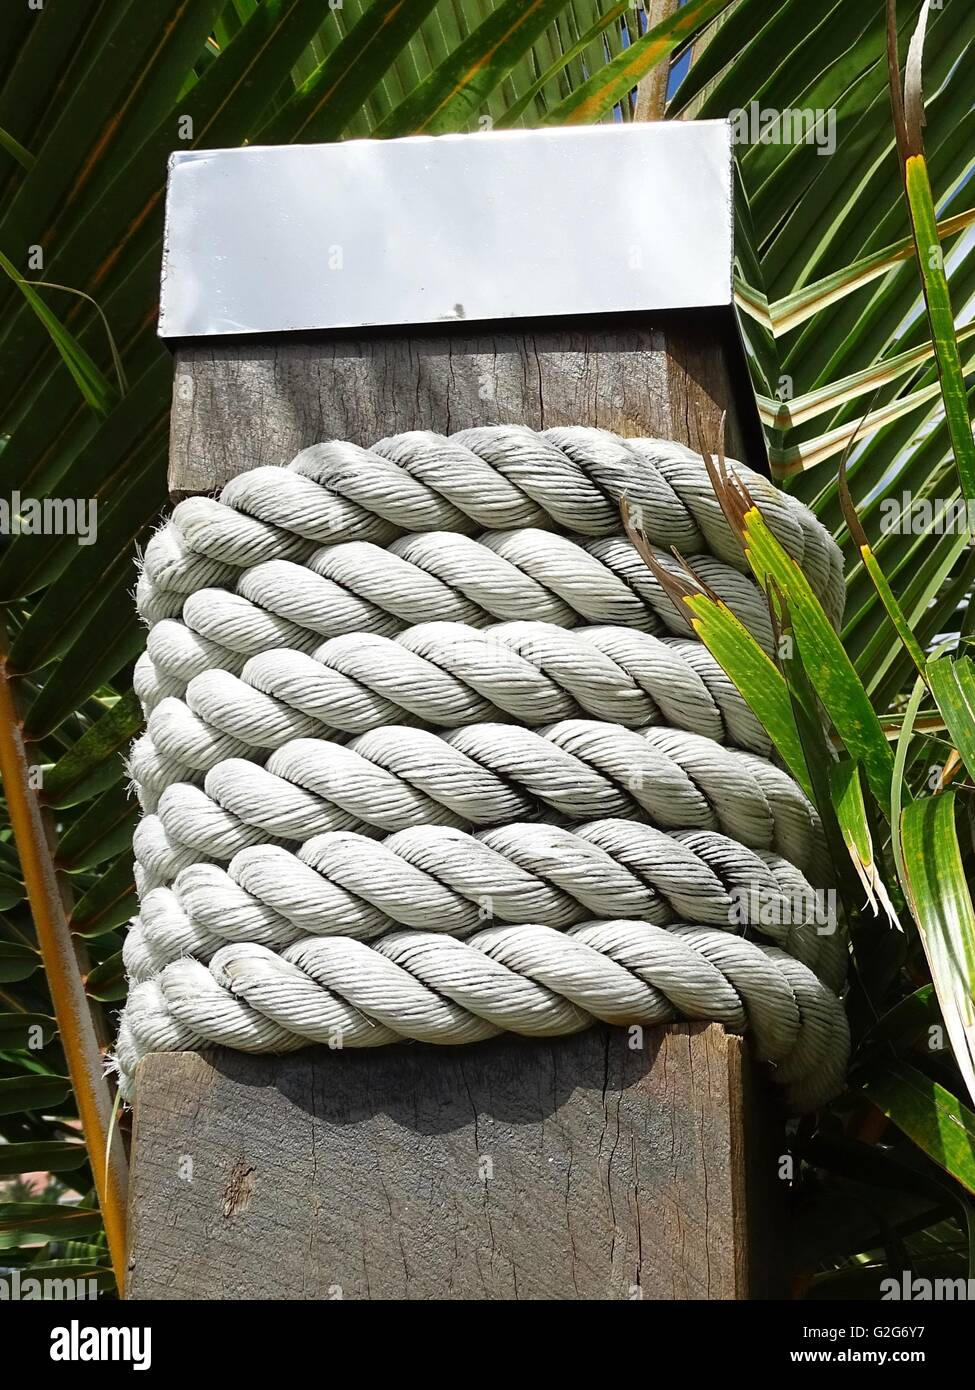 Coiled Rope around a Square Post with a Stainless Steel Cap Stock